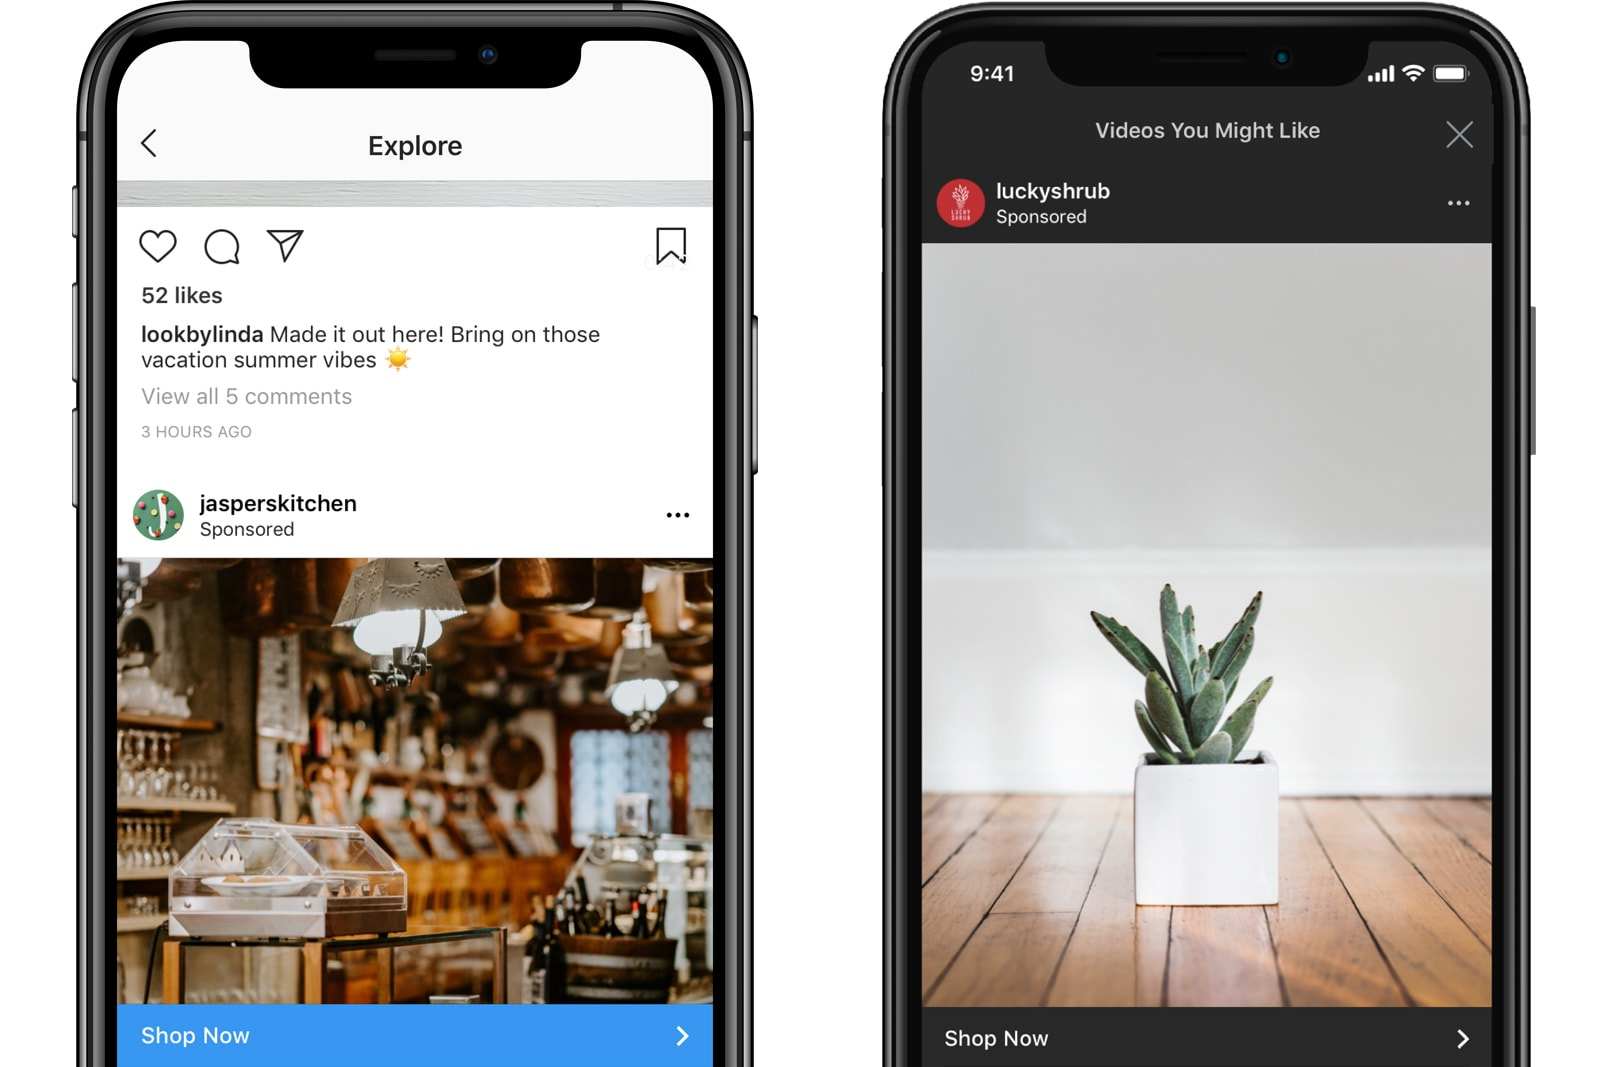 Instagram will drop ads into your Explore feed